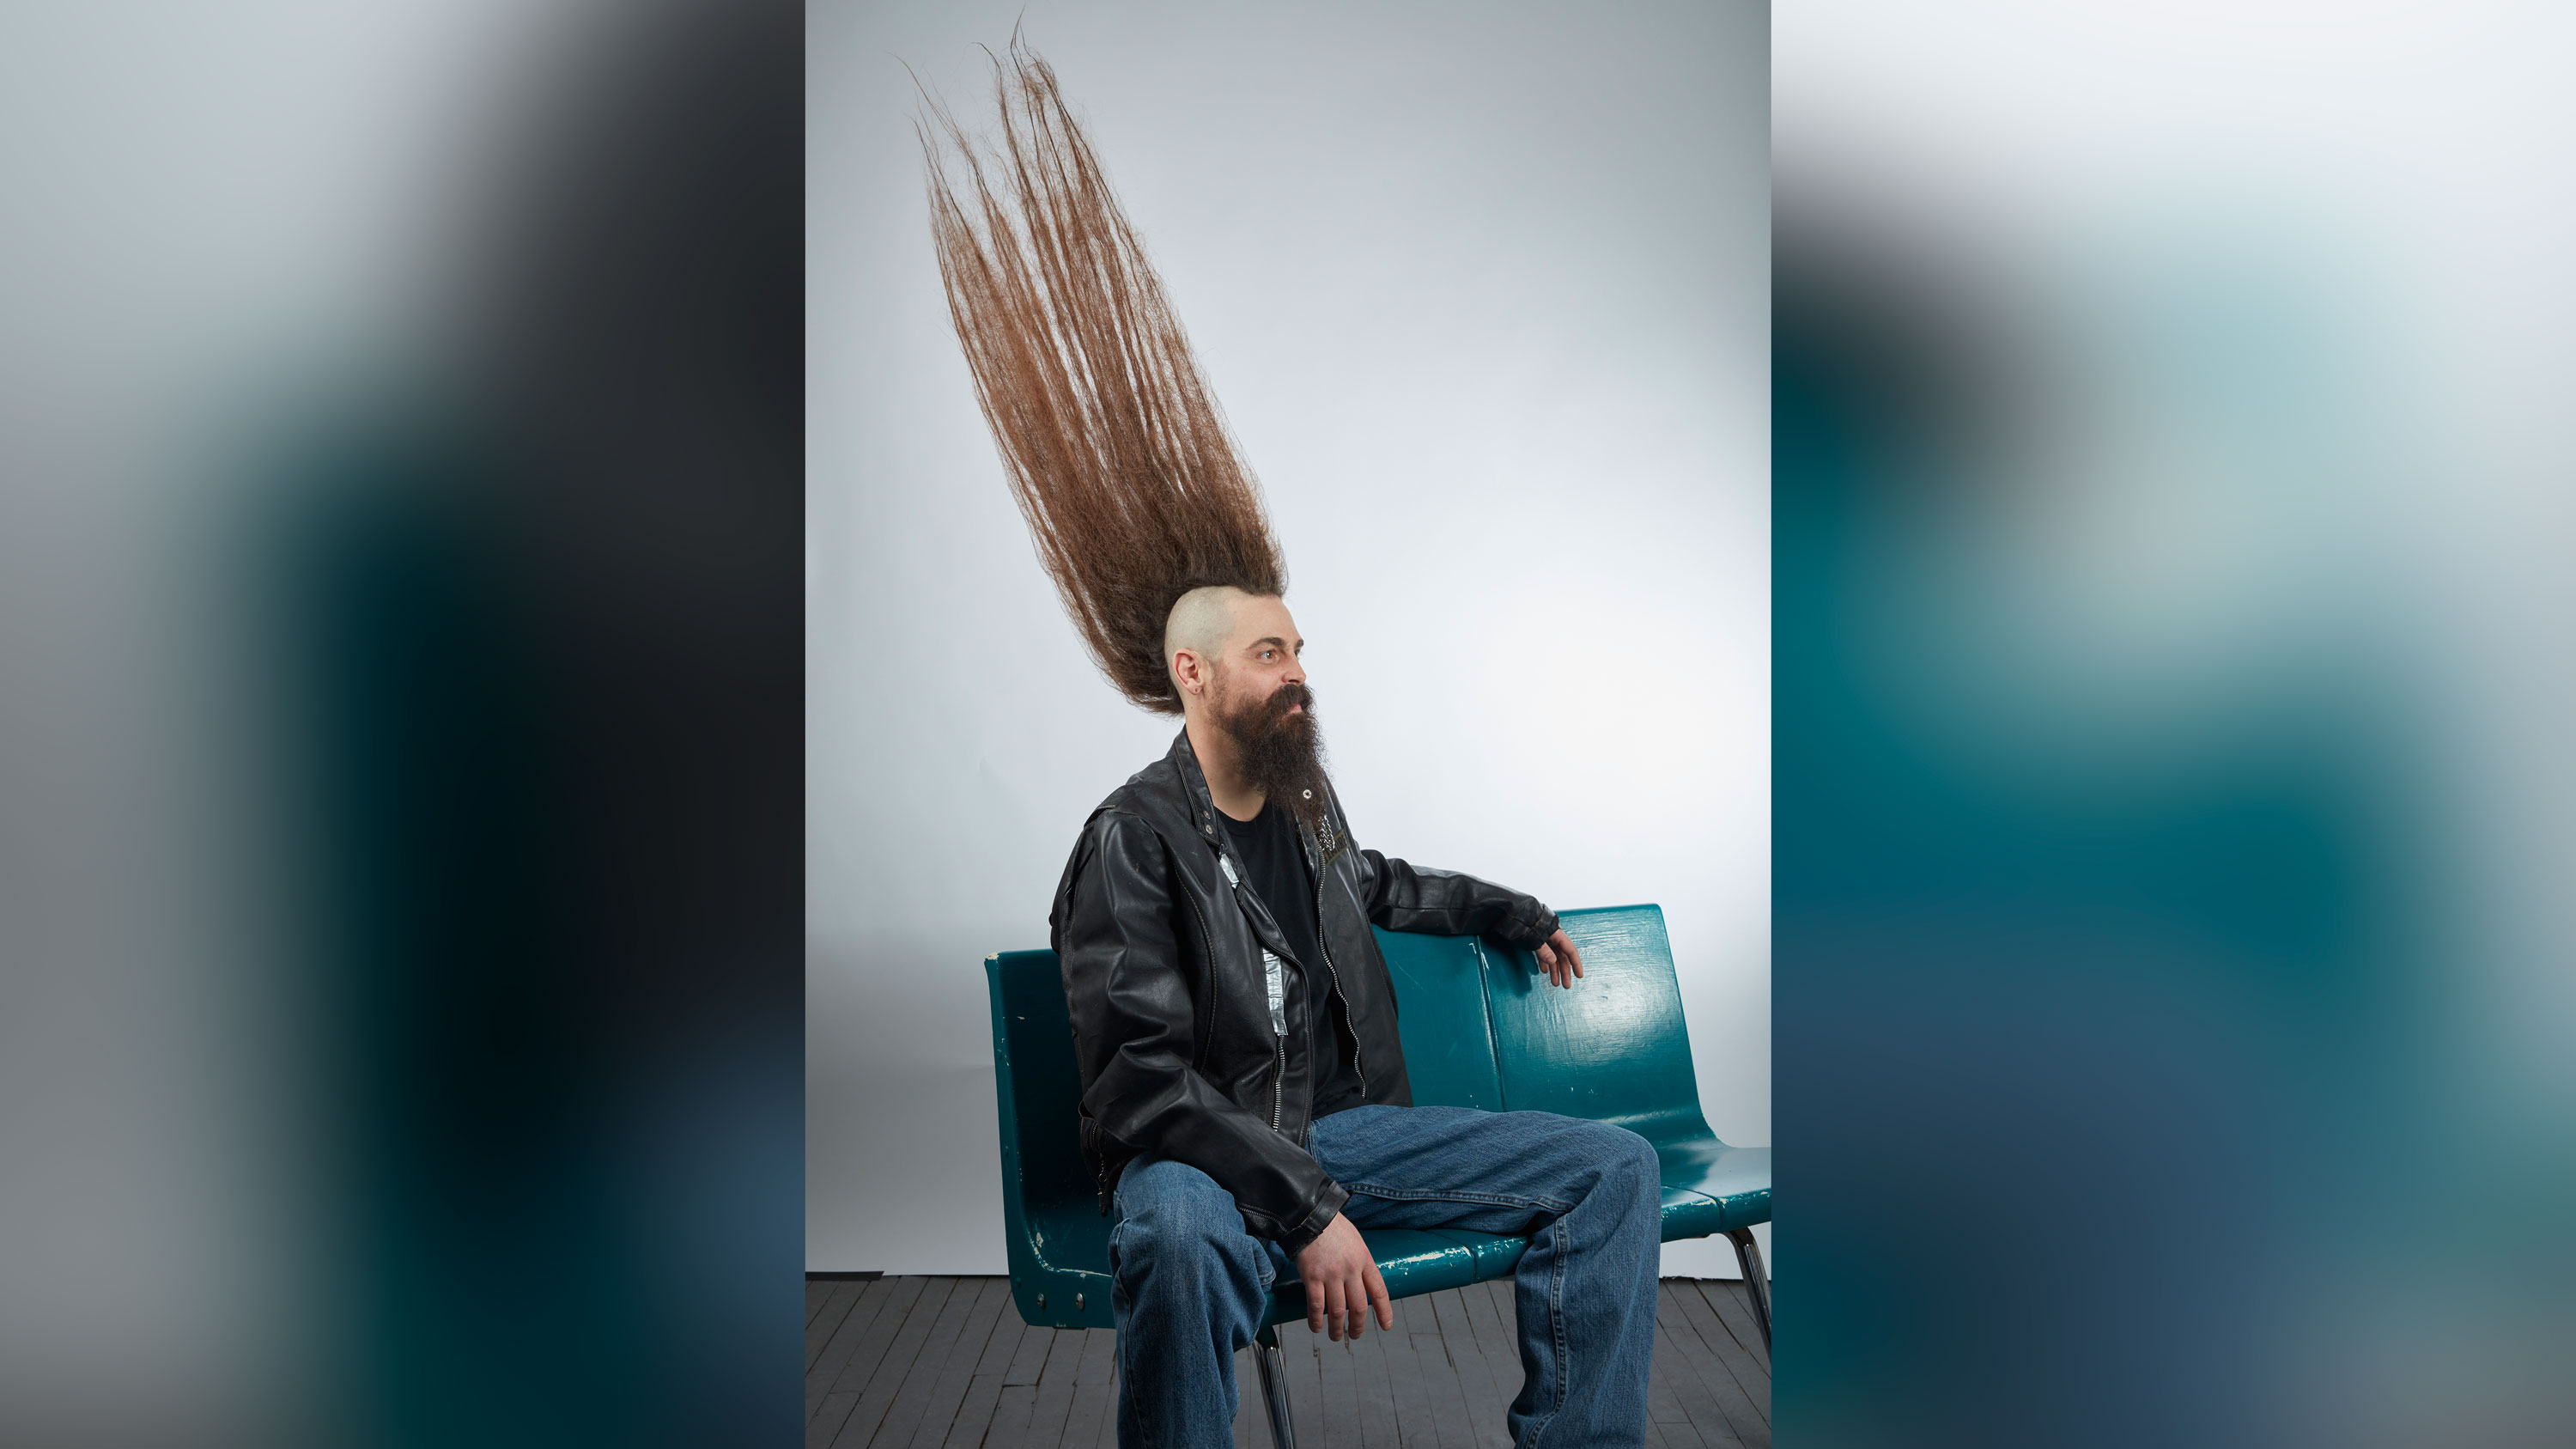 There is a new world record for tallest mohawk and it's a hair-raising accomplishment